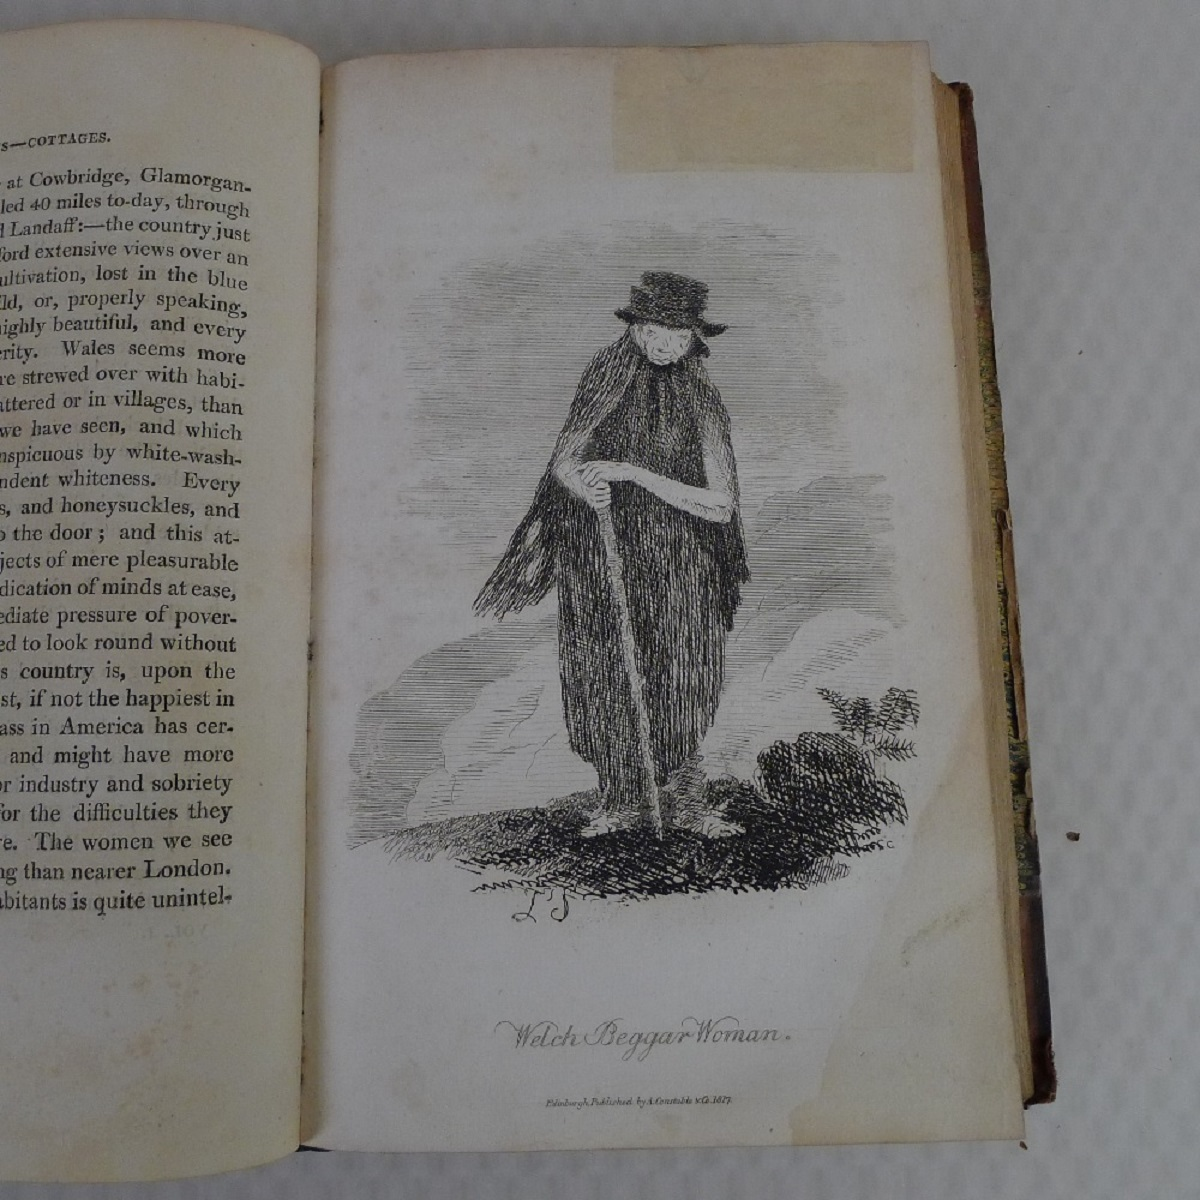 Simond's Travels in Great Britain Volumes I and II, Second Edition published in 1817, being a - Image 7 of 9